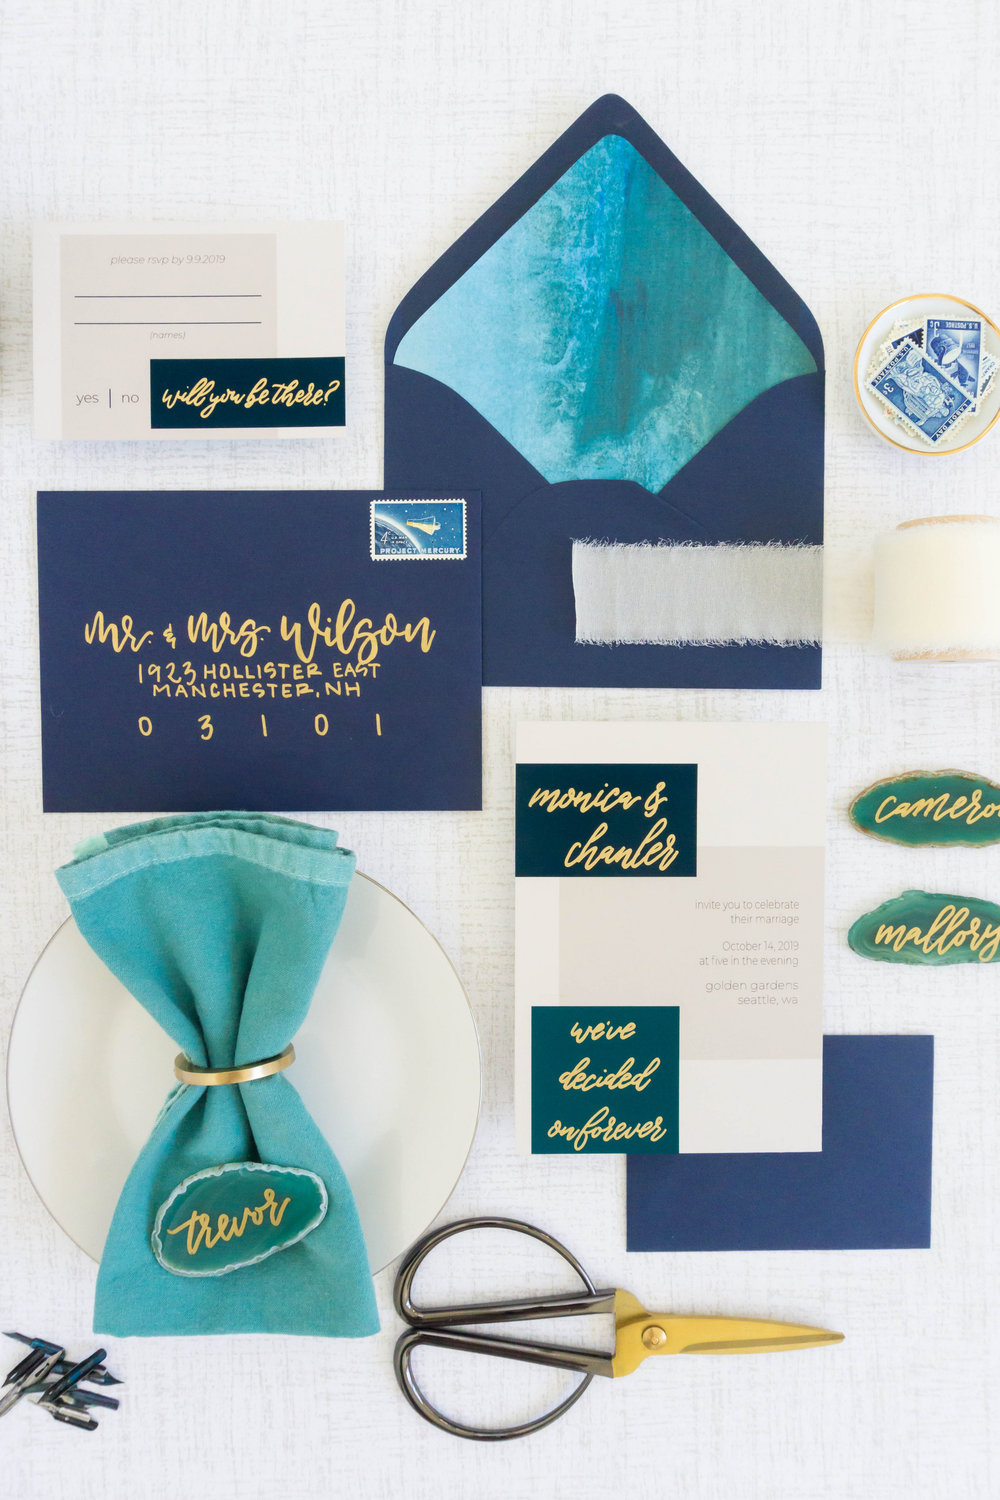 love-fern-design-studio-custom-wedding-invitations-for-the-modern-couple-modern-calligraphy-in-seattle-washington-custom-wedding-stationery-navy-gold-teal-modern-color-block